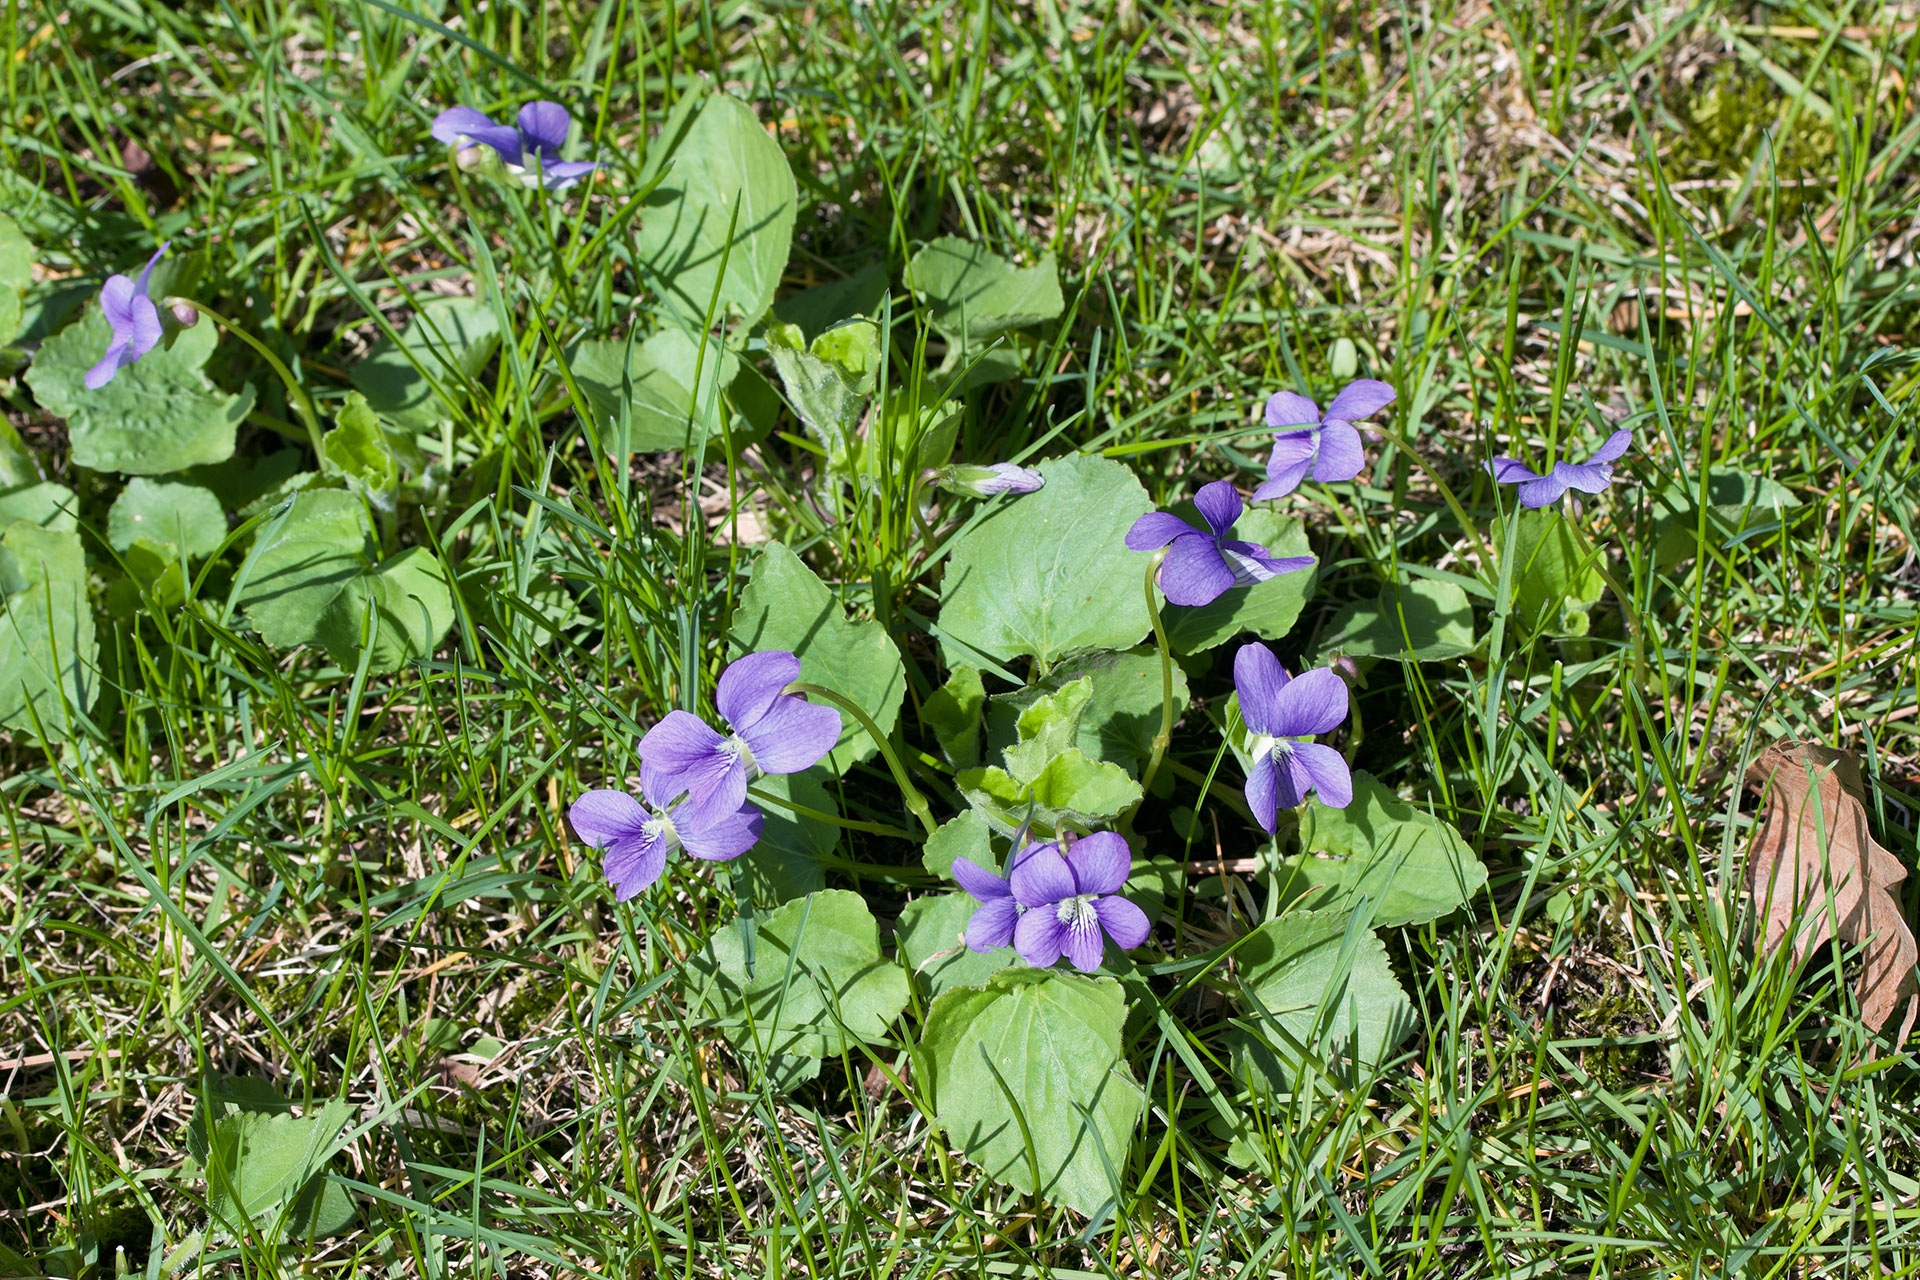 Violet Illinois State Flower